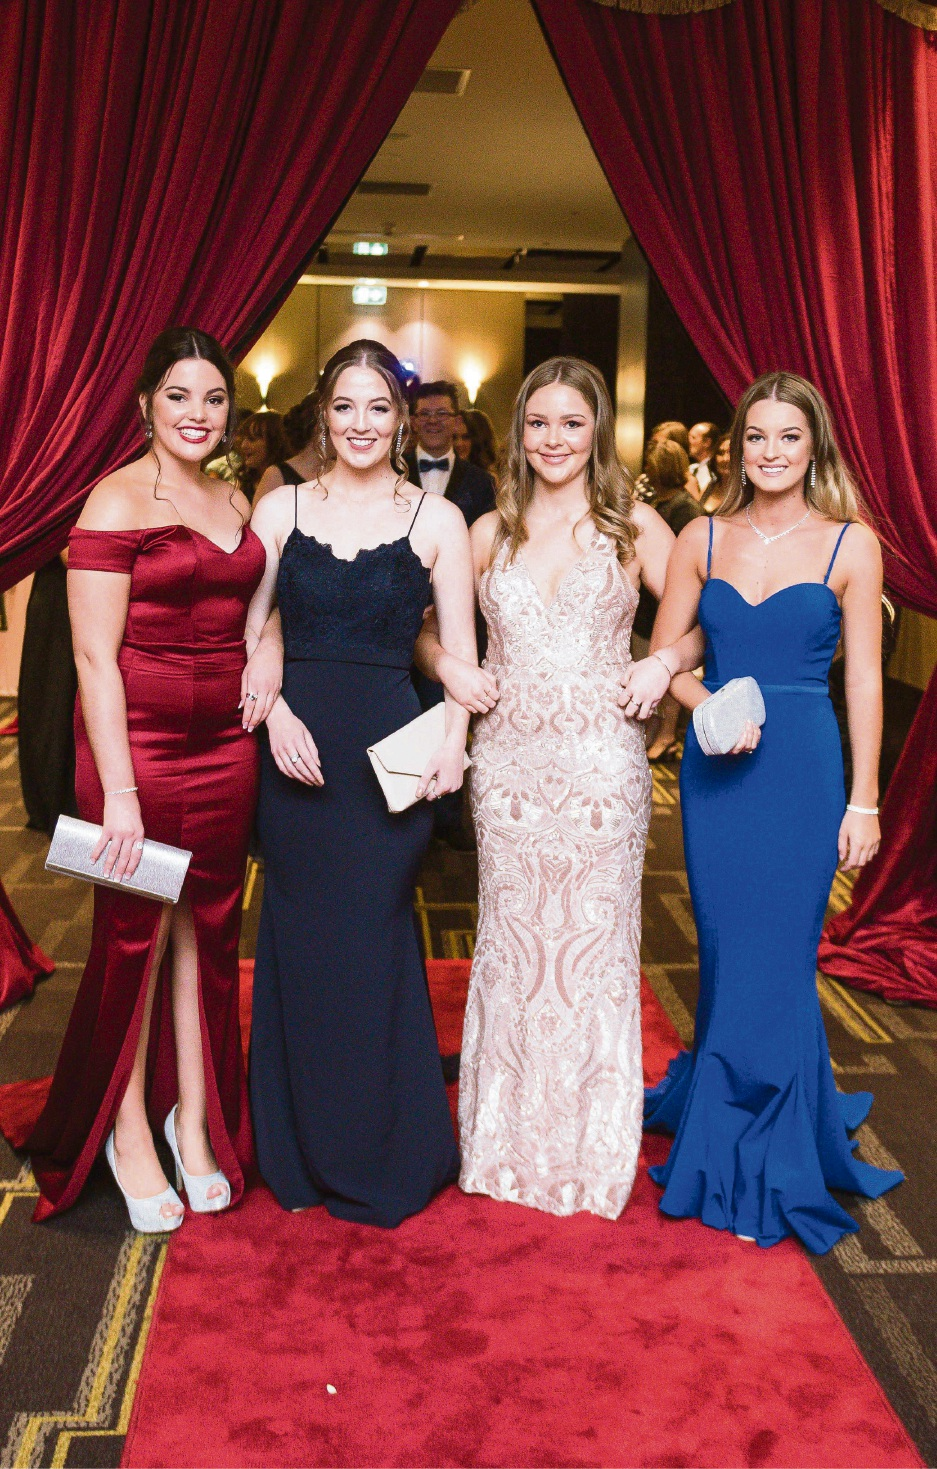 Elise Webster, Abbie Nicholls, Tessa Anderson and Melissa Green. Pictures: Event Photography